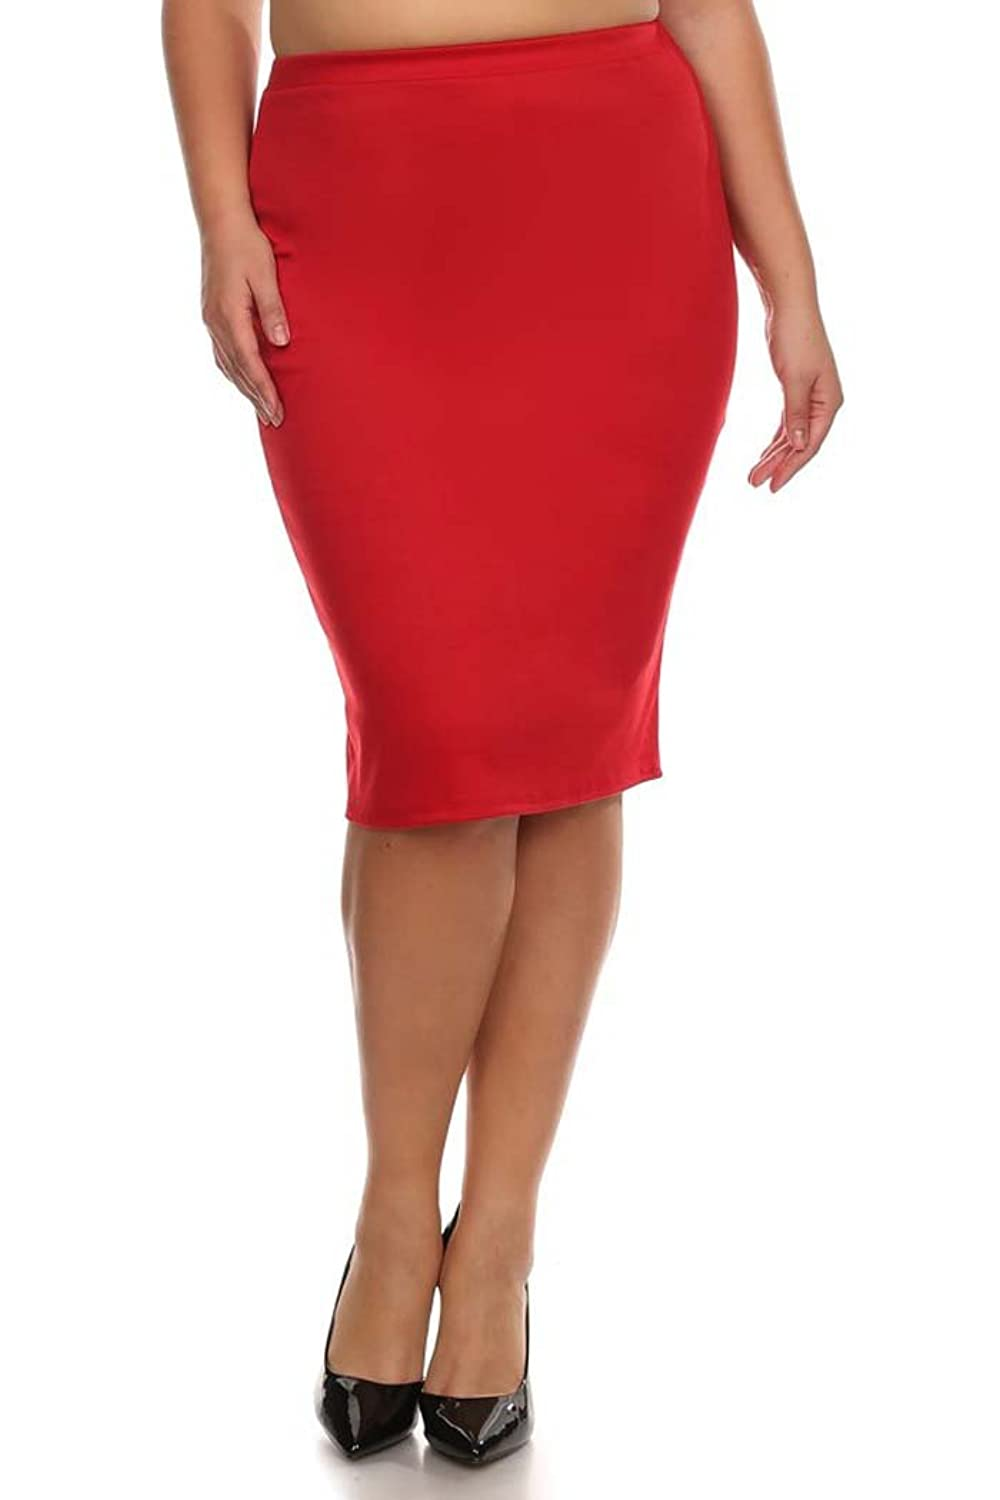 low-cost Women's PLUS Solid Midi Length Pencil Skirt. MADE IN USA ...